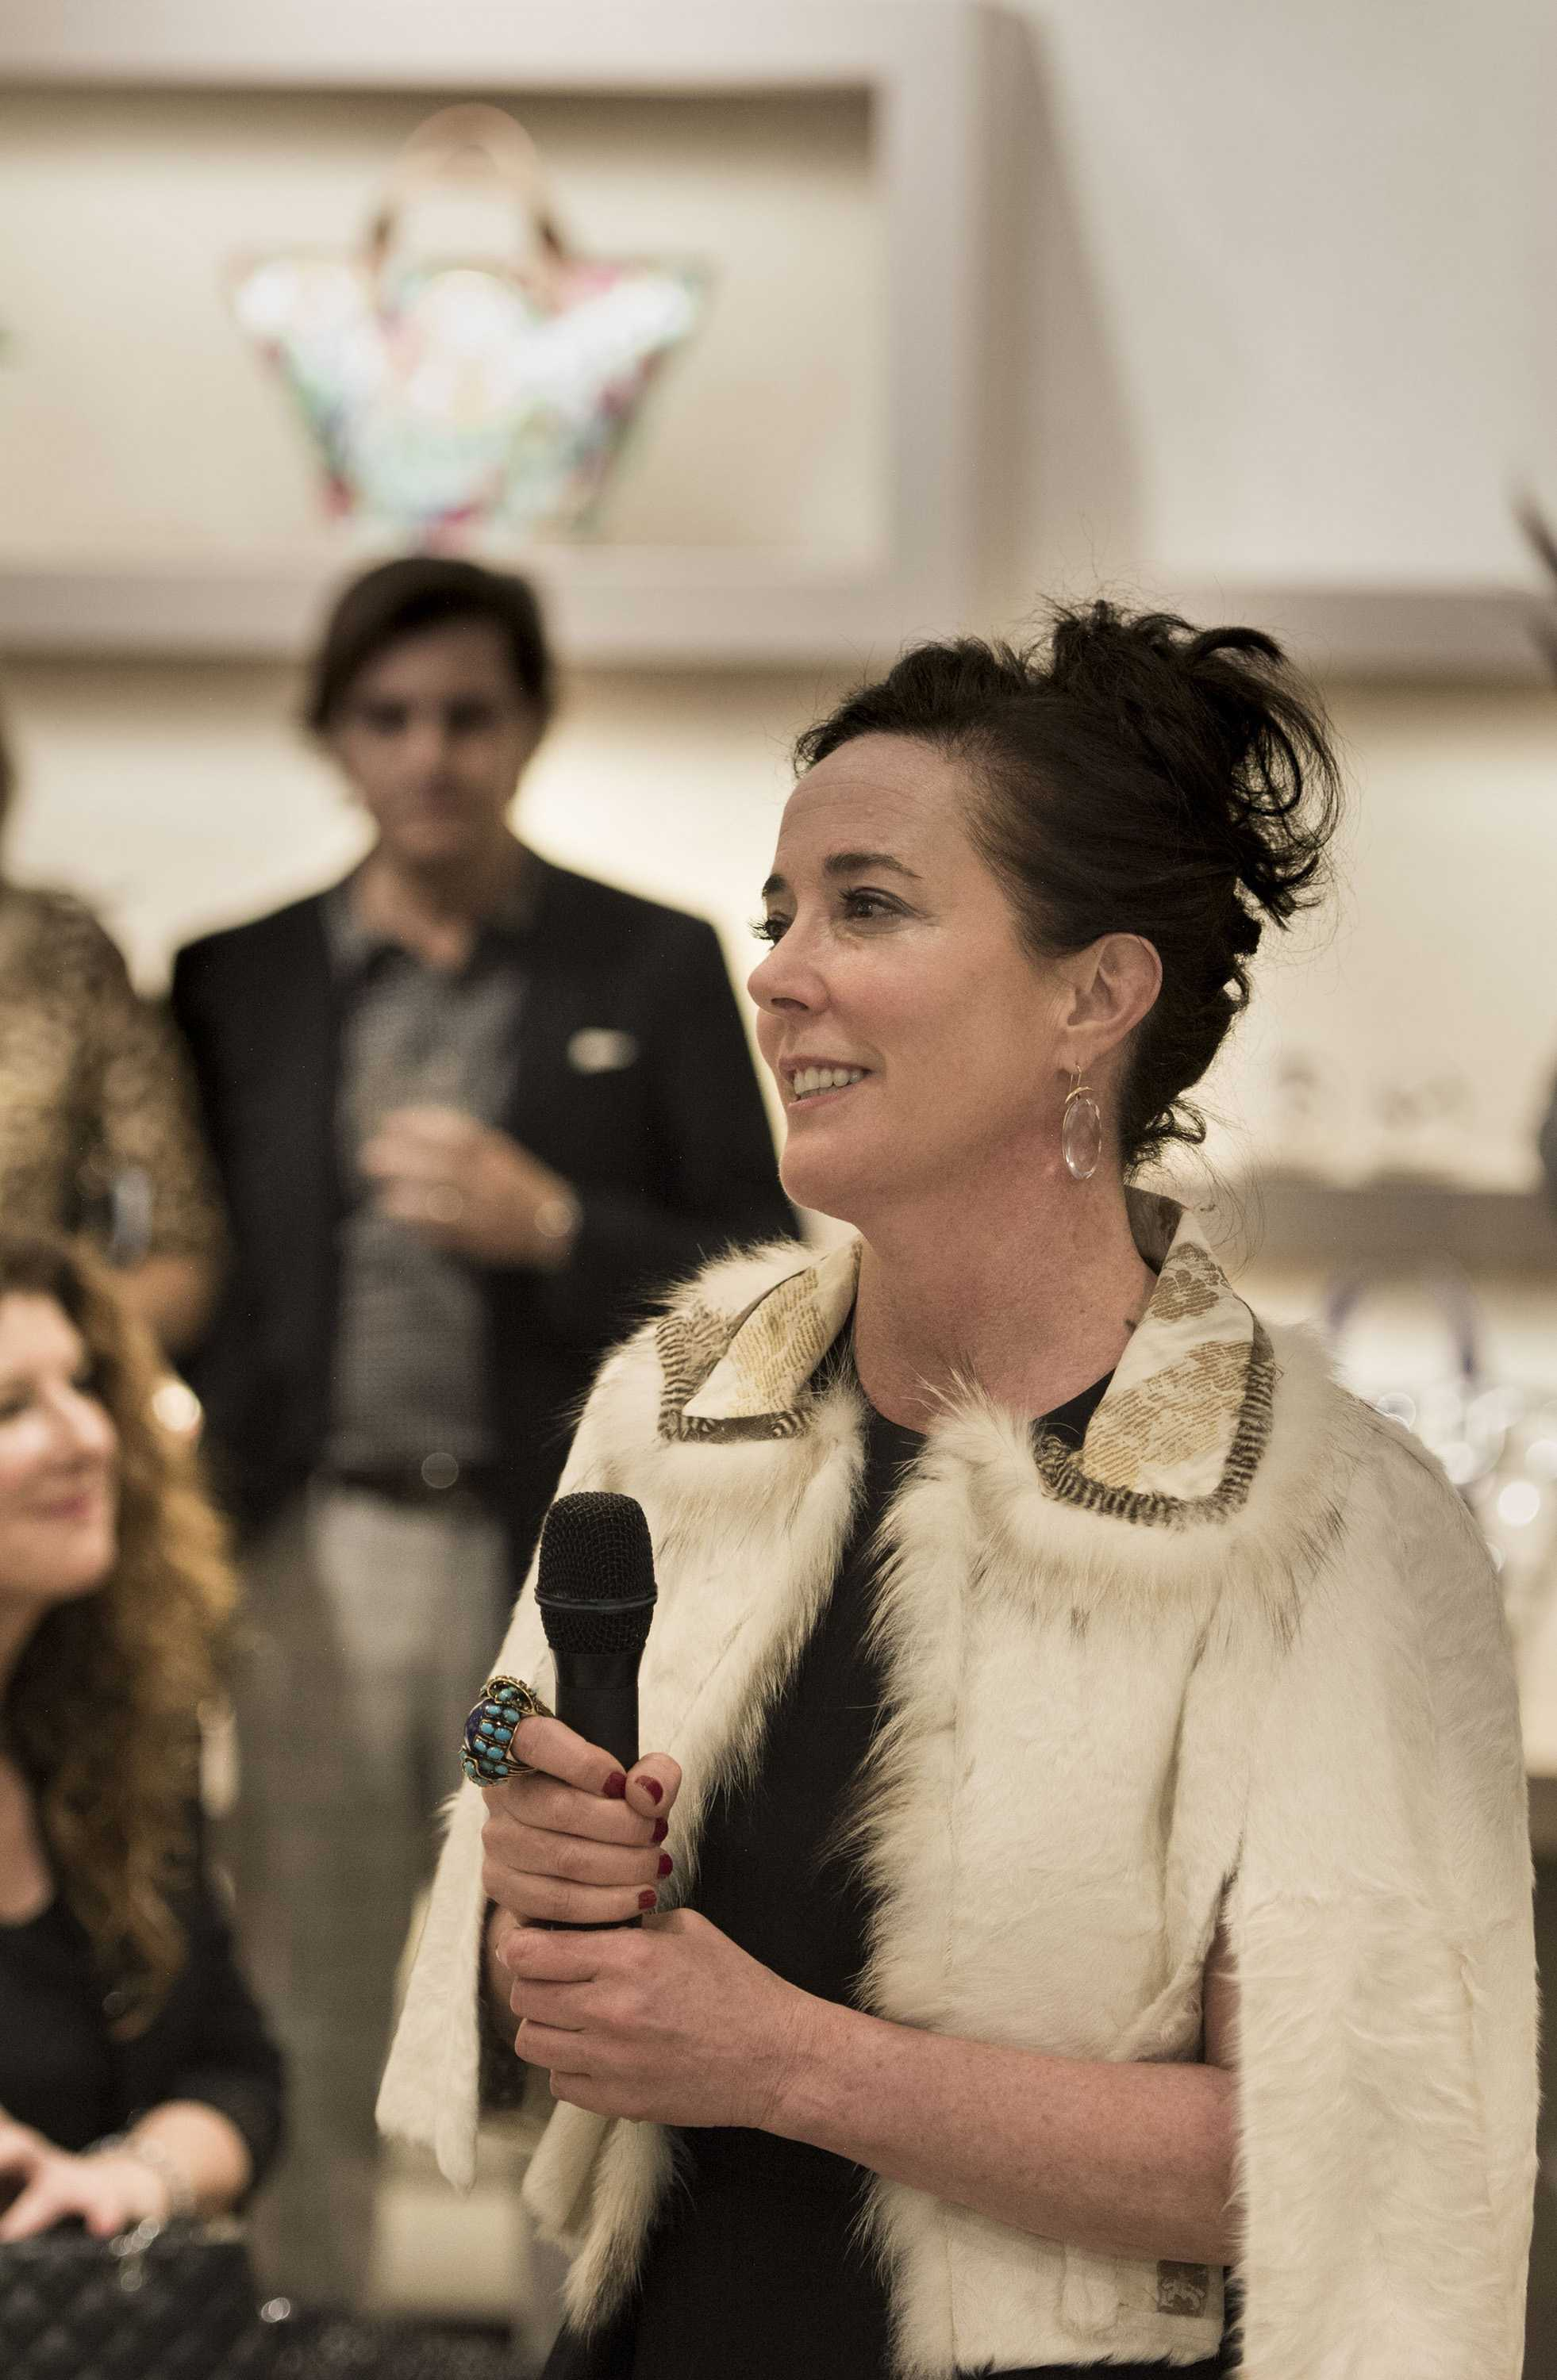 Kate Spade speaks to the crowd during an event at Hall's on Grand at Crown Center Plaza on Wednesday, March 9, 2016 in Kansas City, Mo. (Shane Keyser/Kansas City Star/TNS)